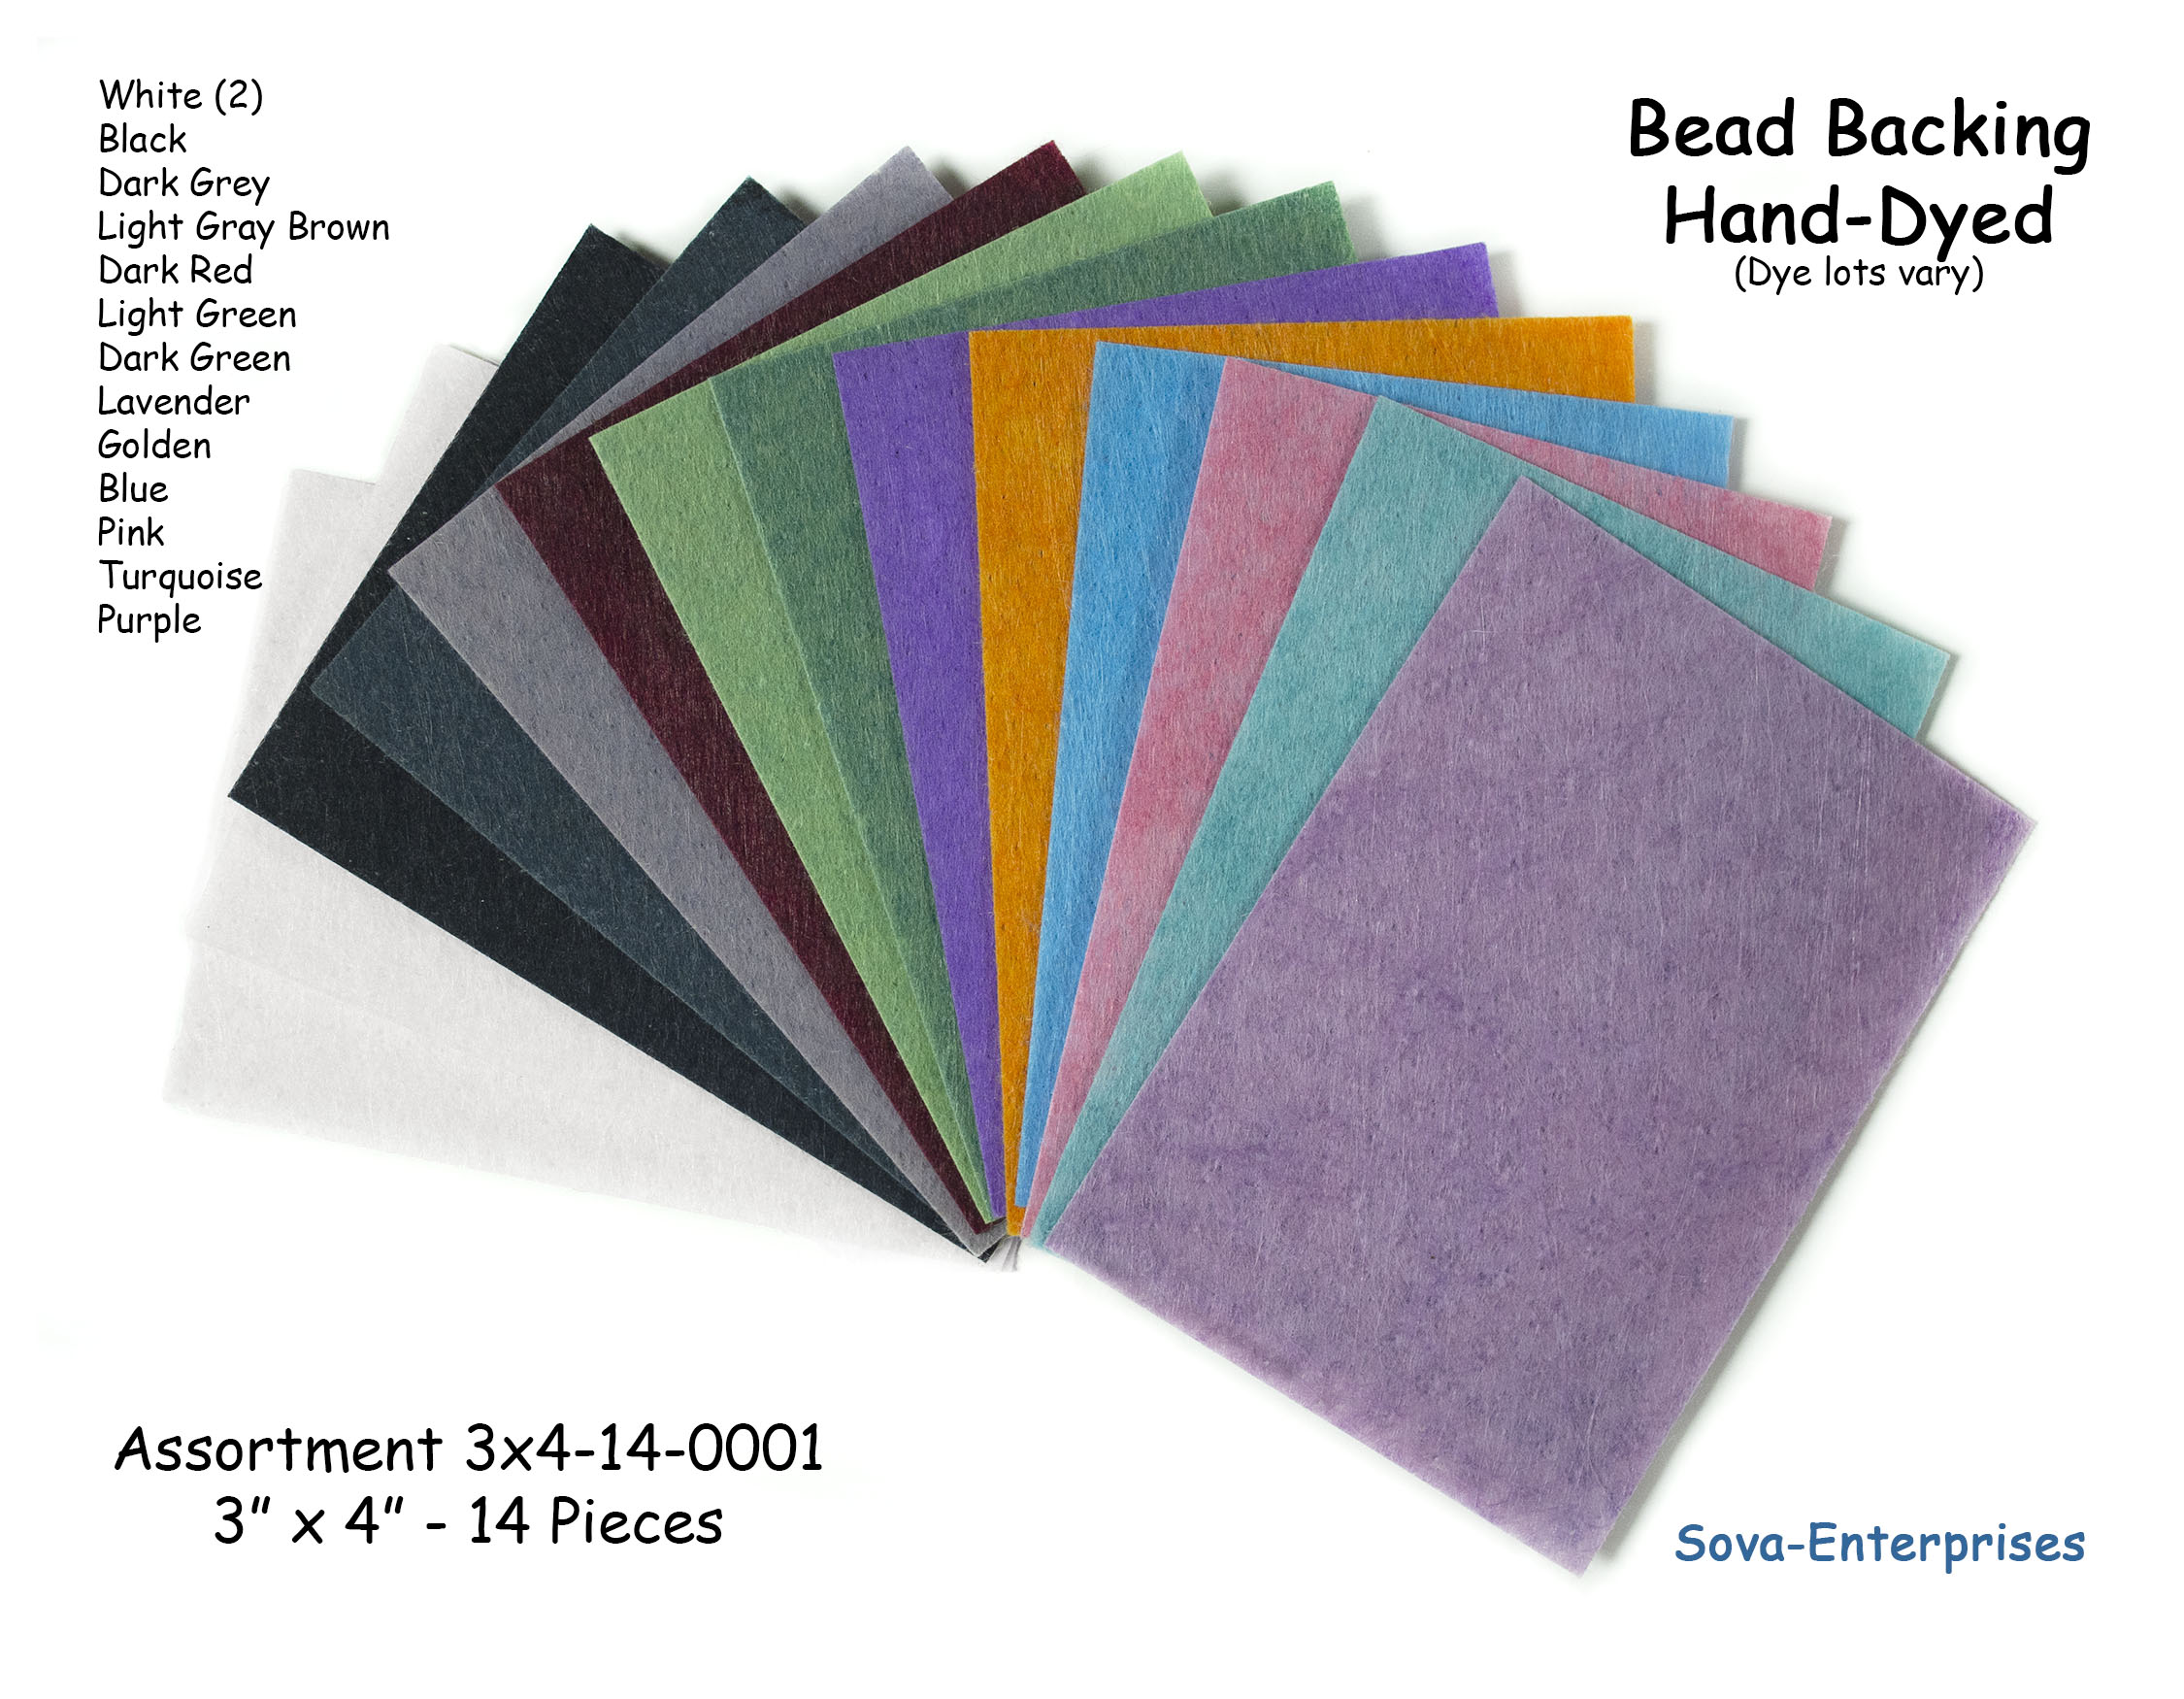 "Bead Backing Economy Foundation 3"" x 4"" Assort 3x4-14-0001 (14)"